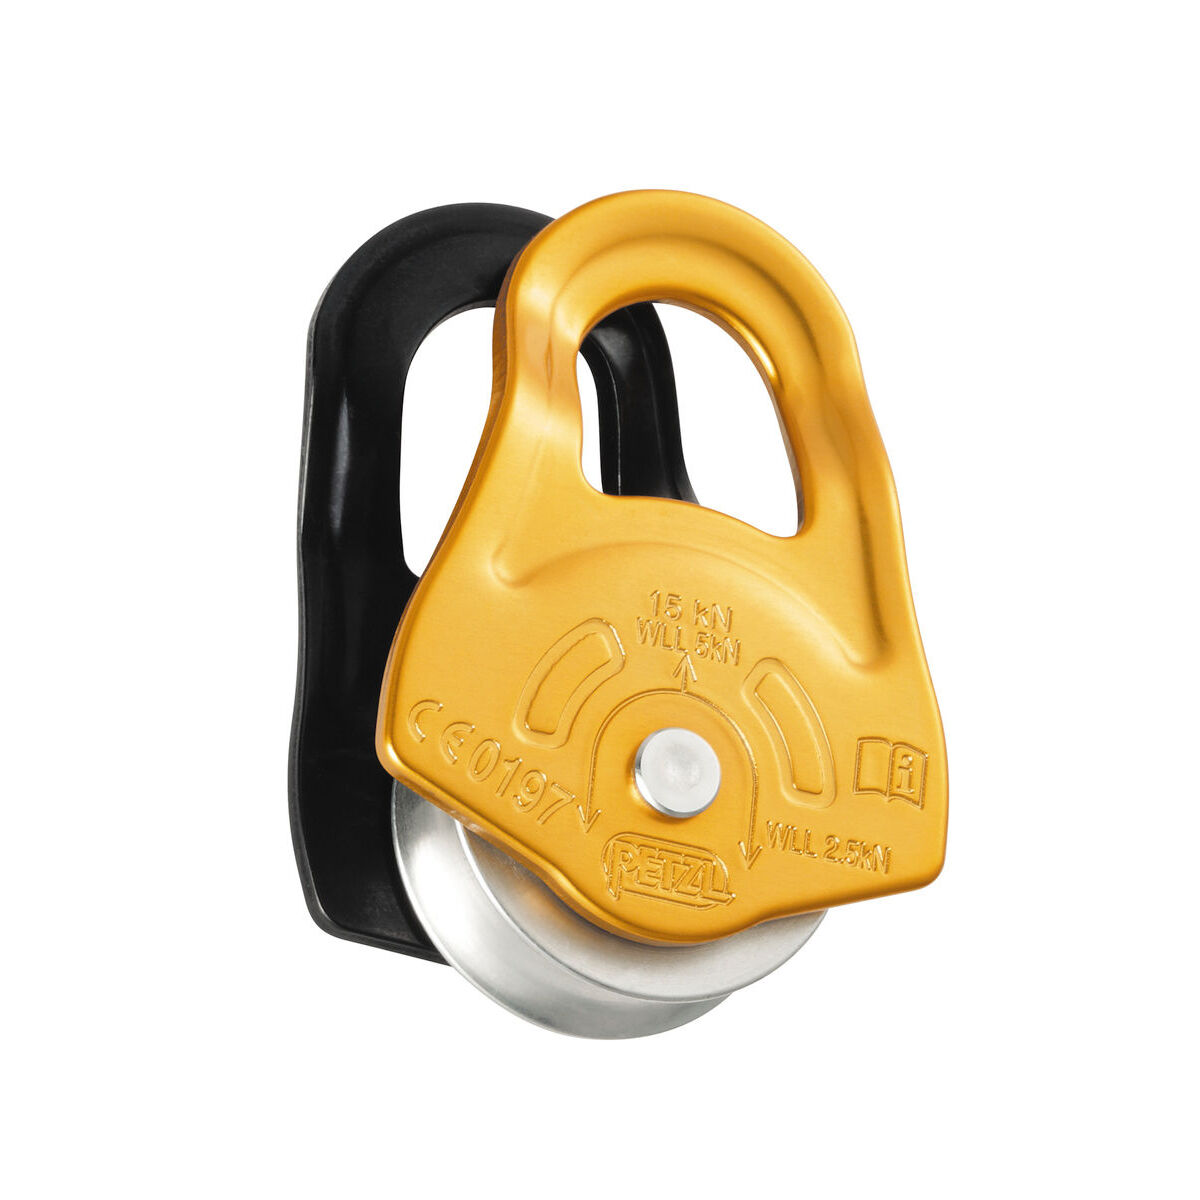 PARTNER PULLEY  Ultra compact high efficiency by PETZL  high quality genuine